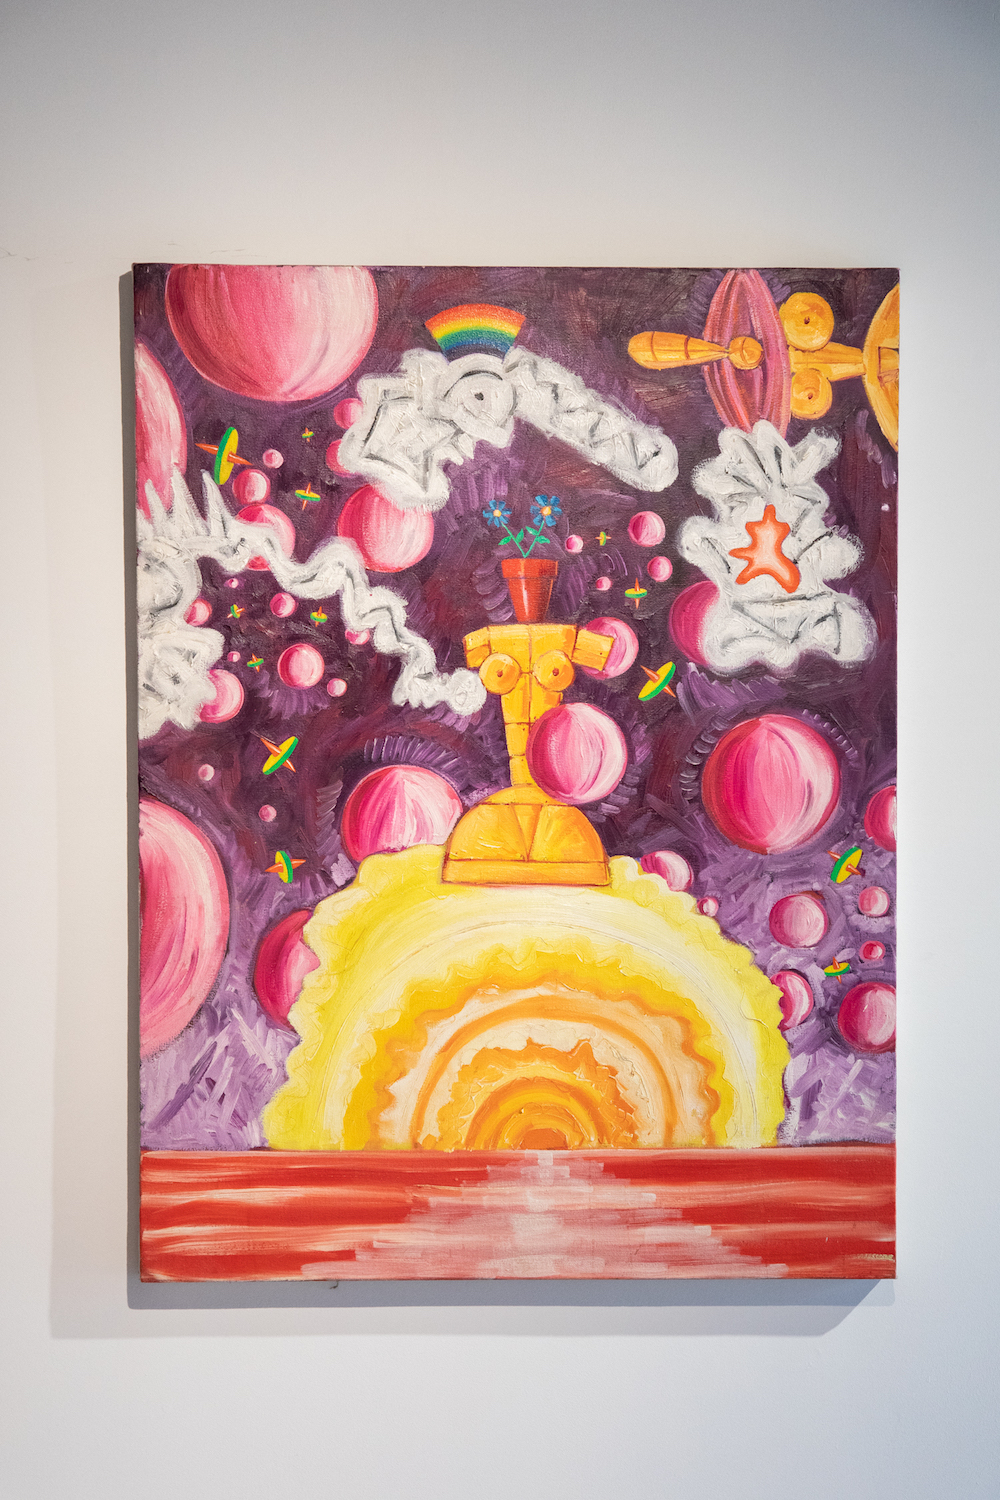 painting in peter shire installation, with psychedelic imagery